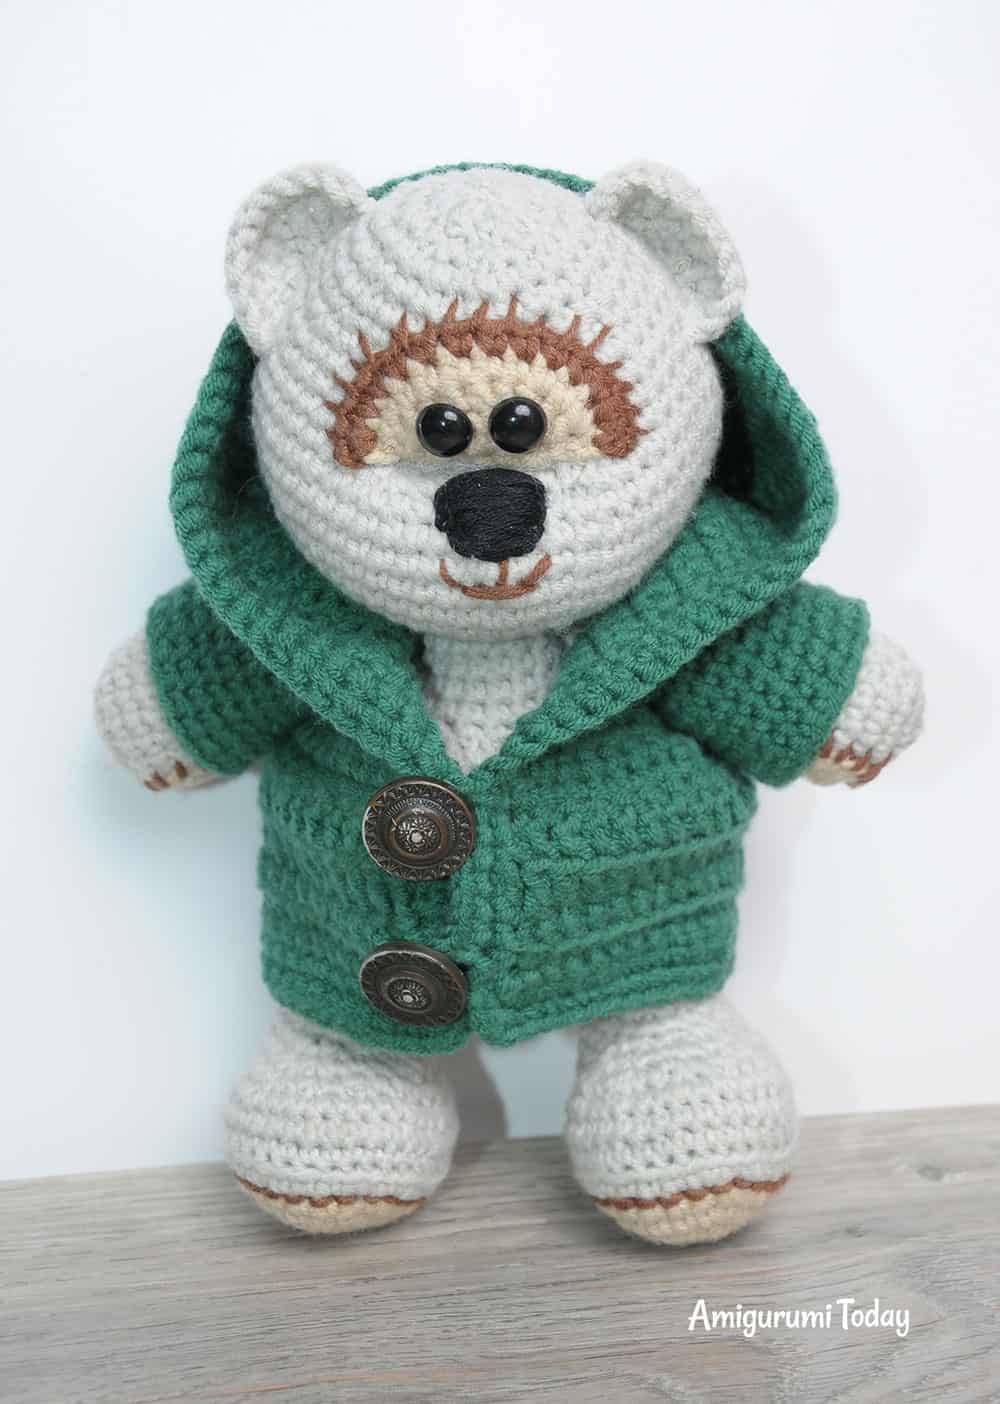 Honey teddy bear crochet pattern